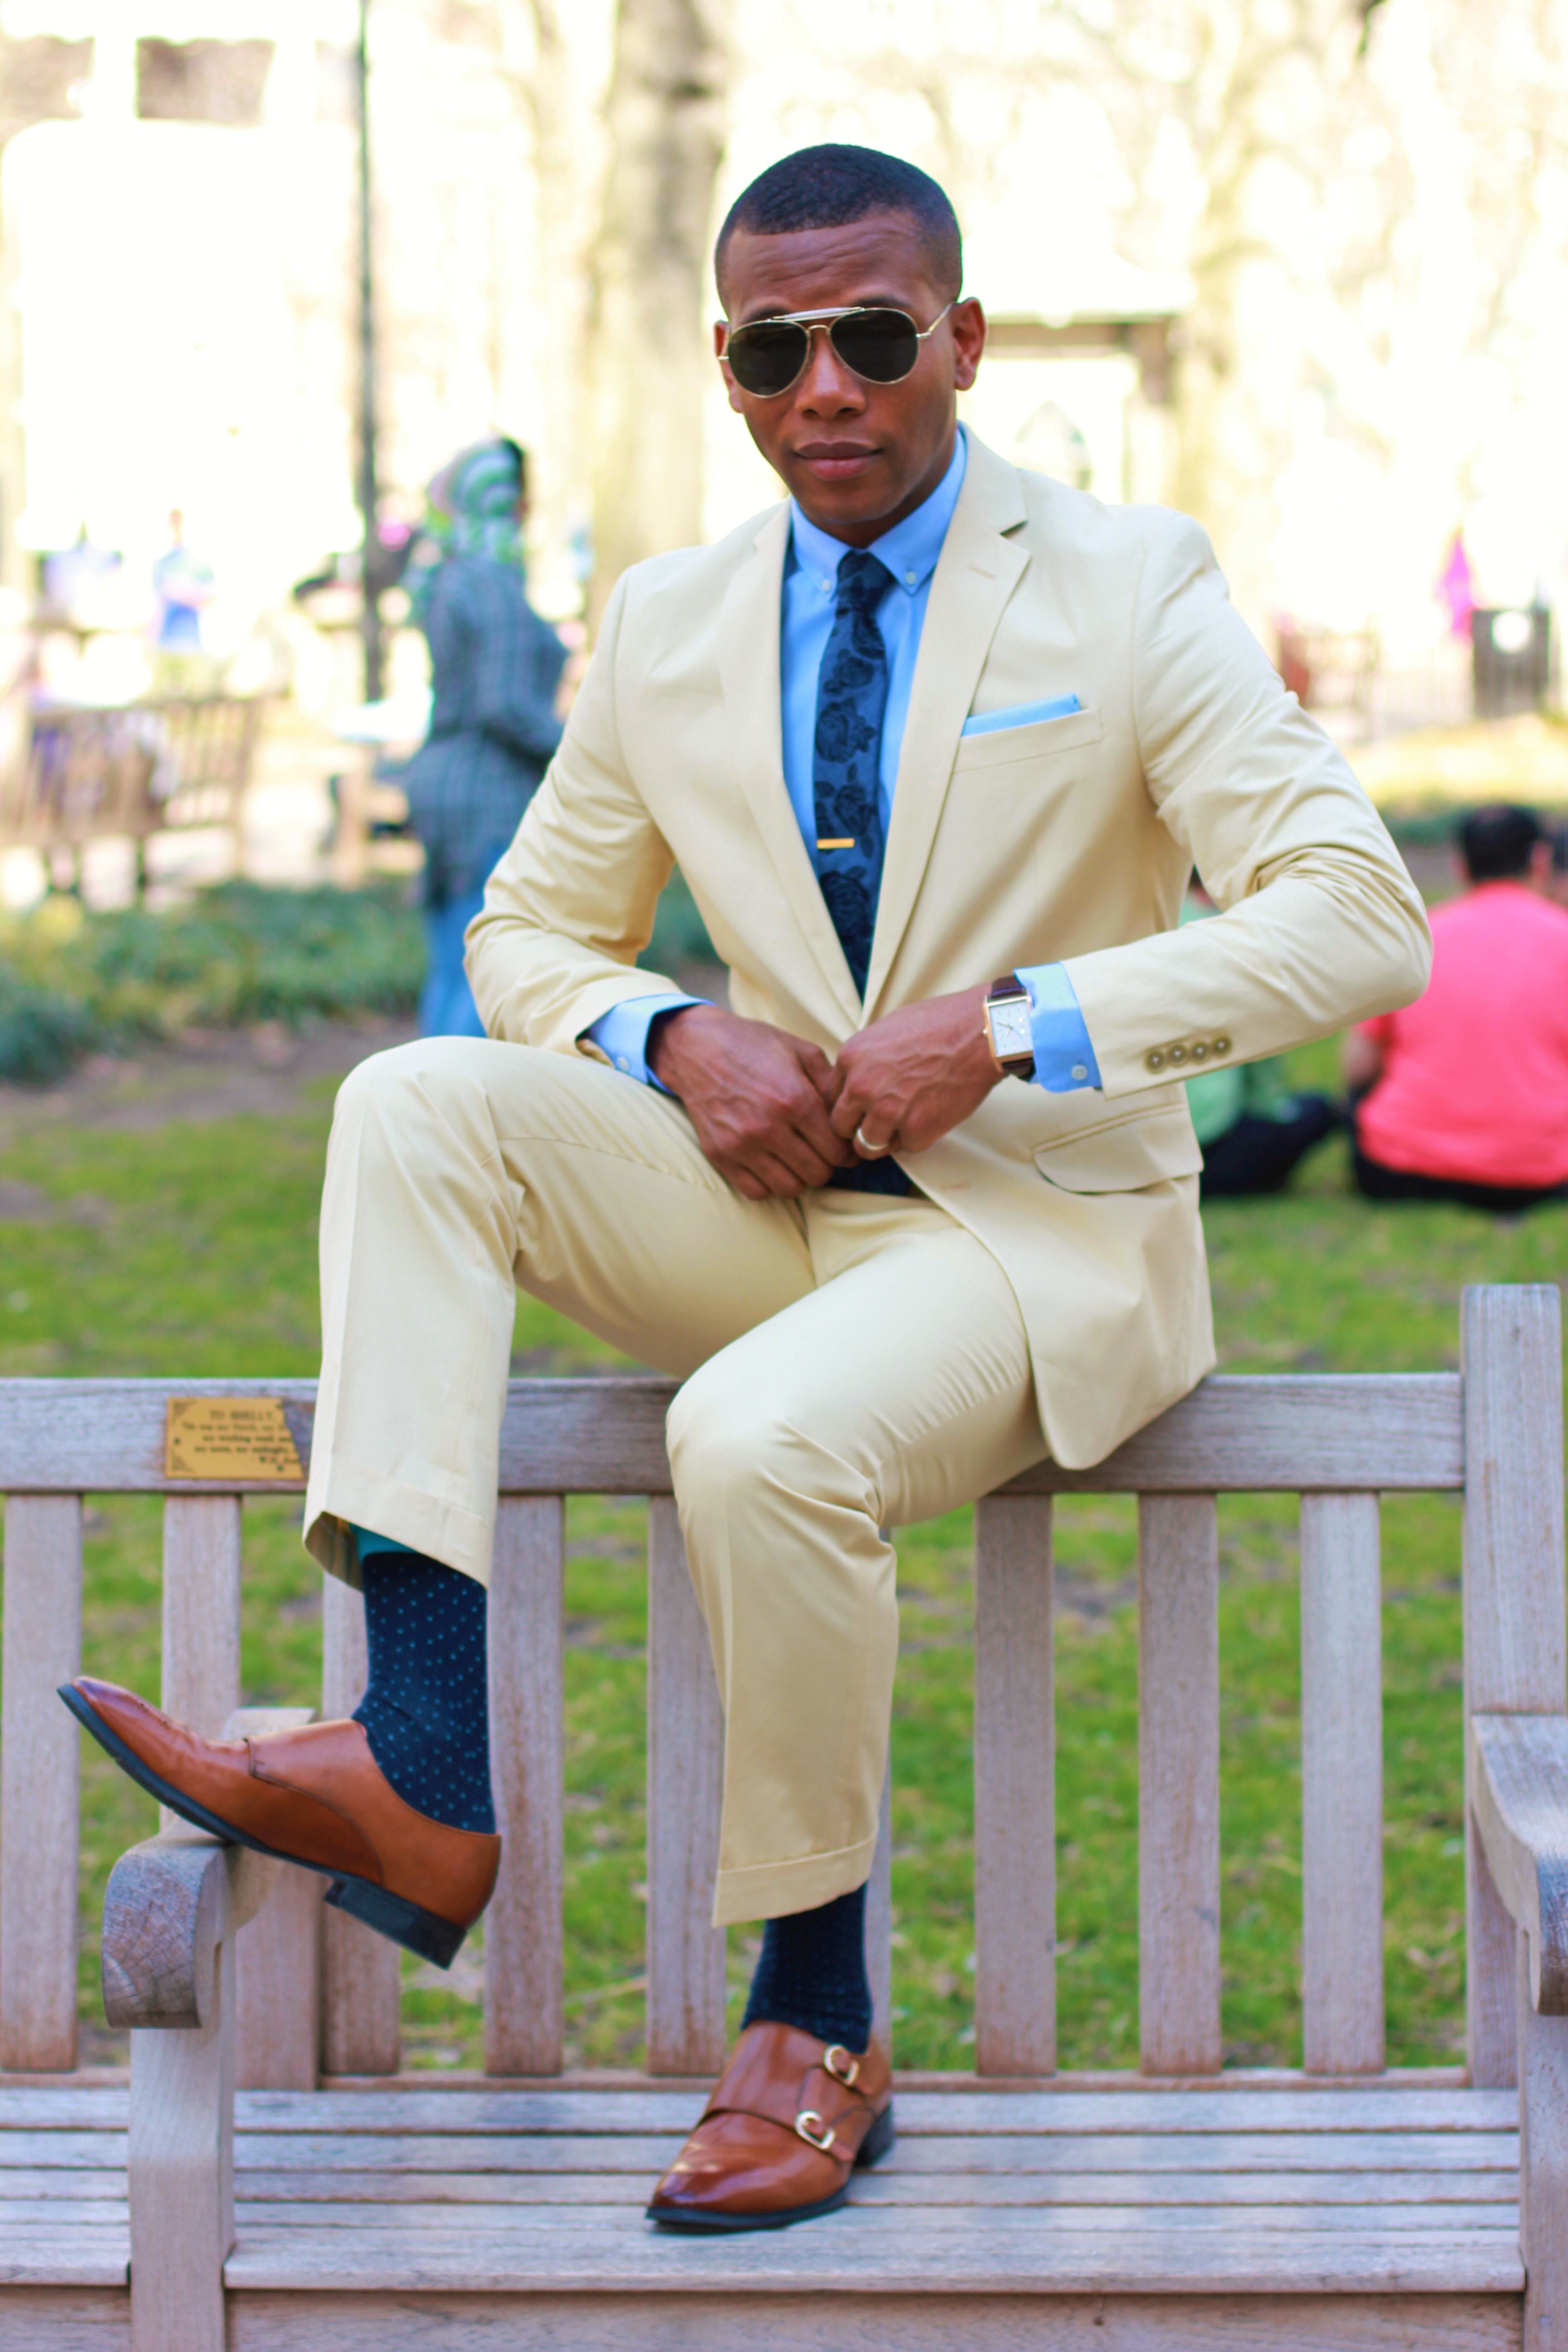 Men's Style Pro in Bar III for Macy's Sponsored Feature